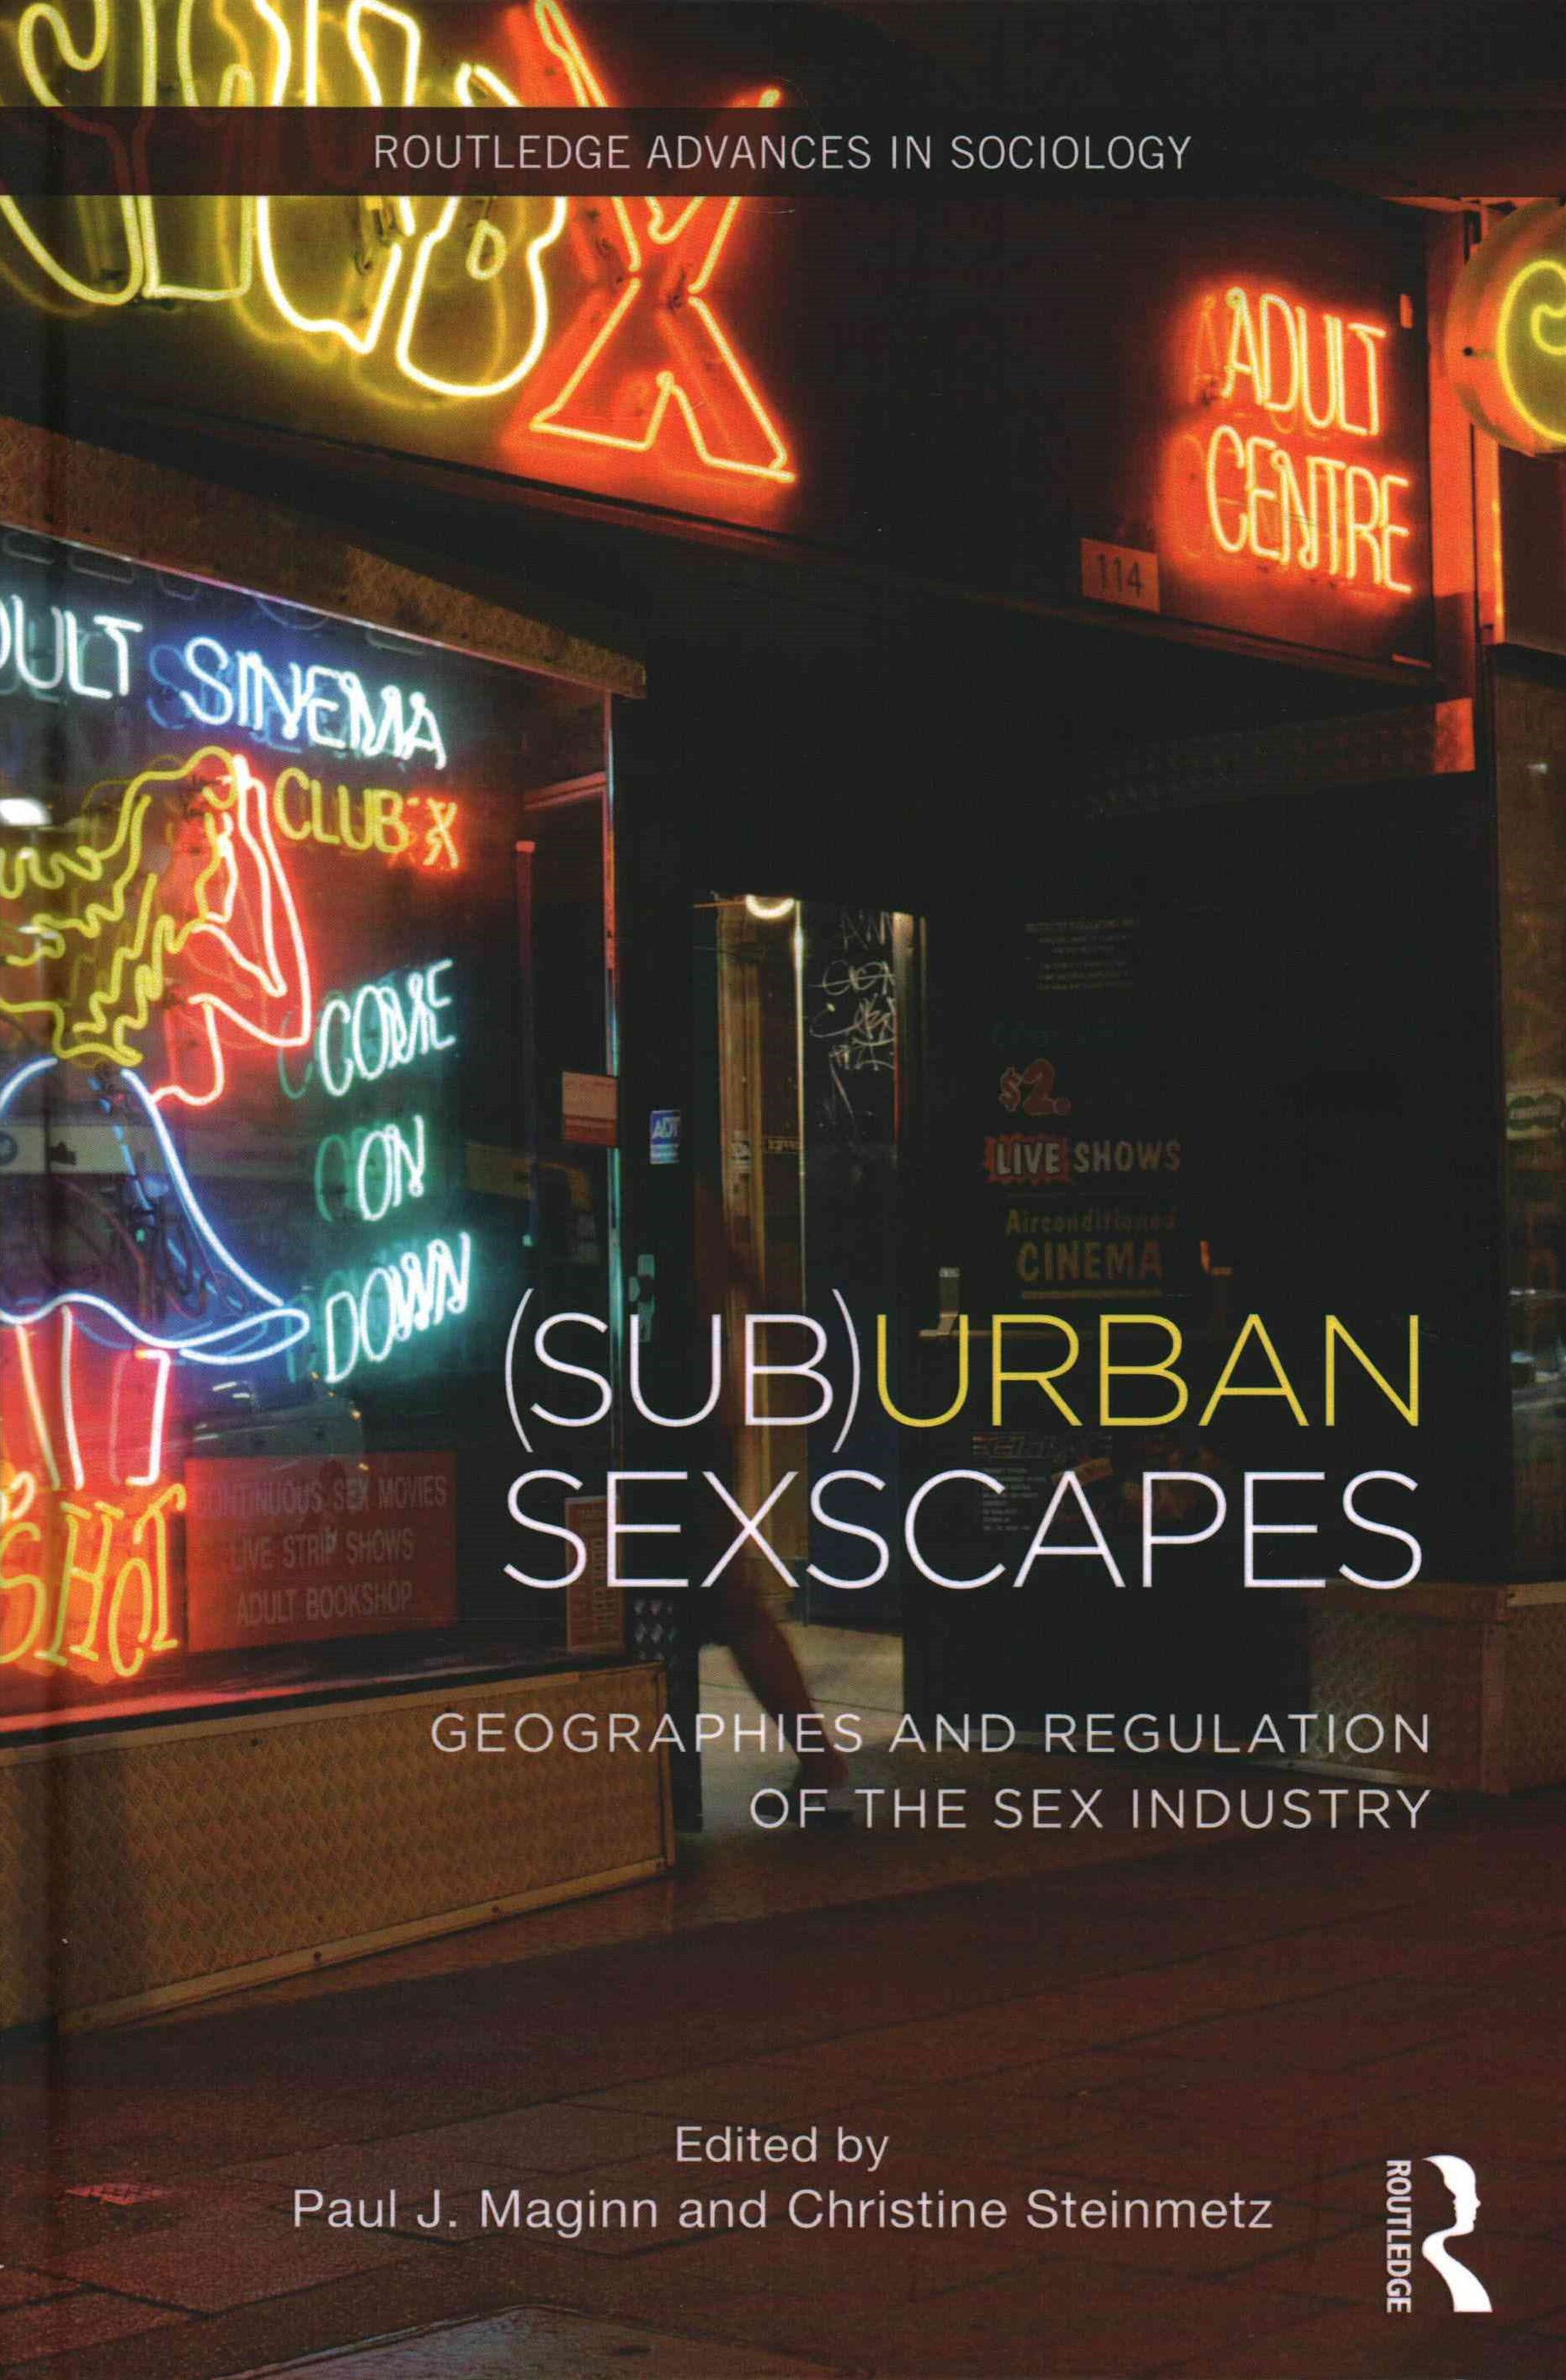 (Sub)Urban Sexscapes